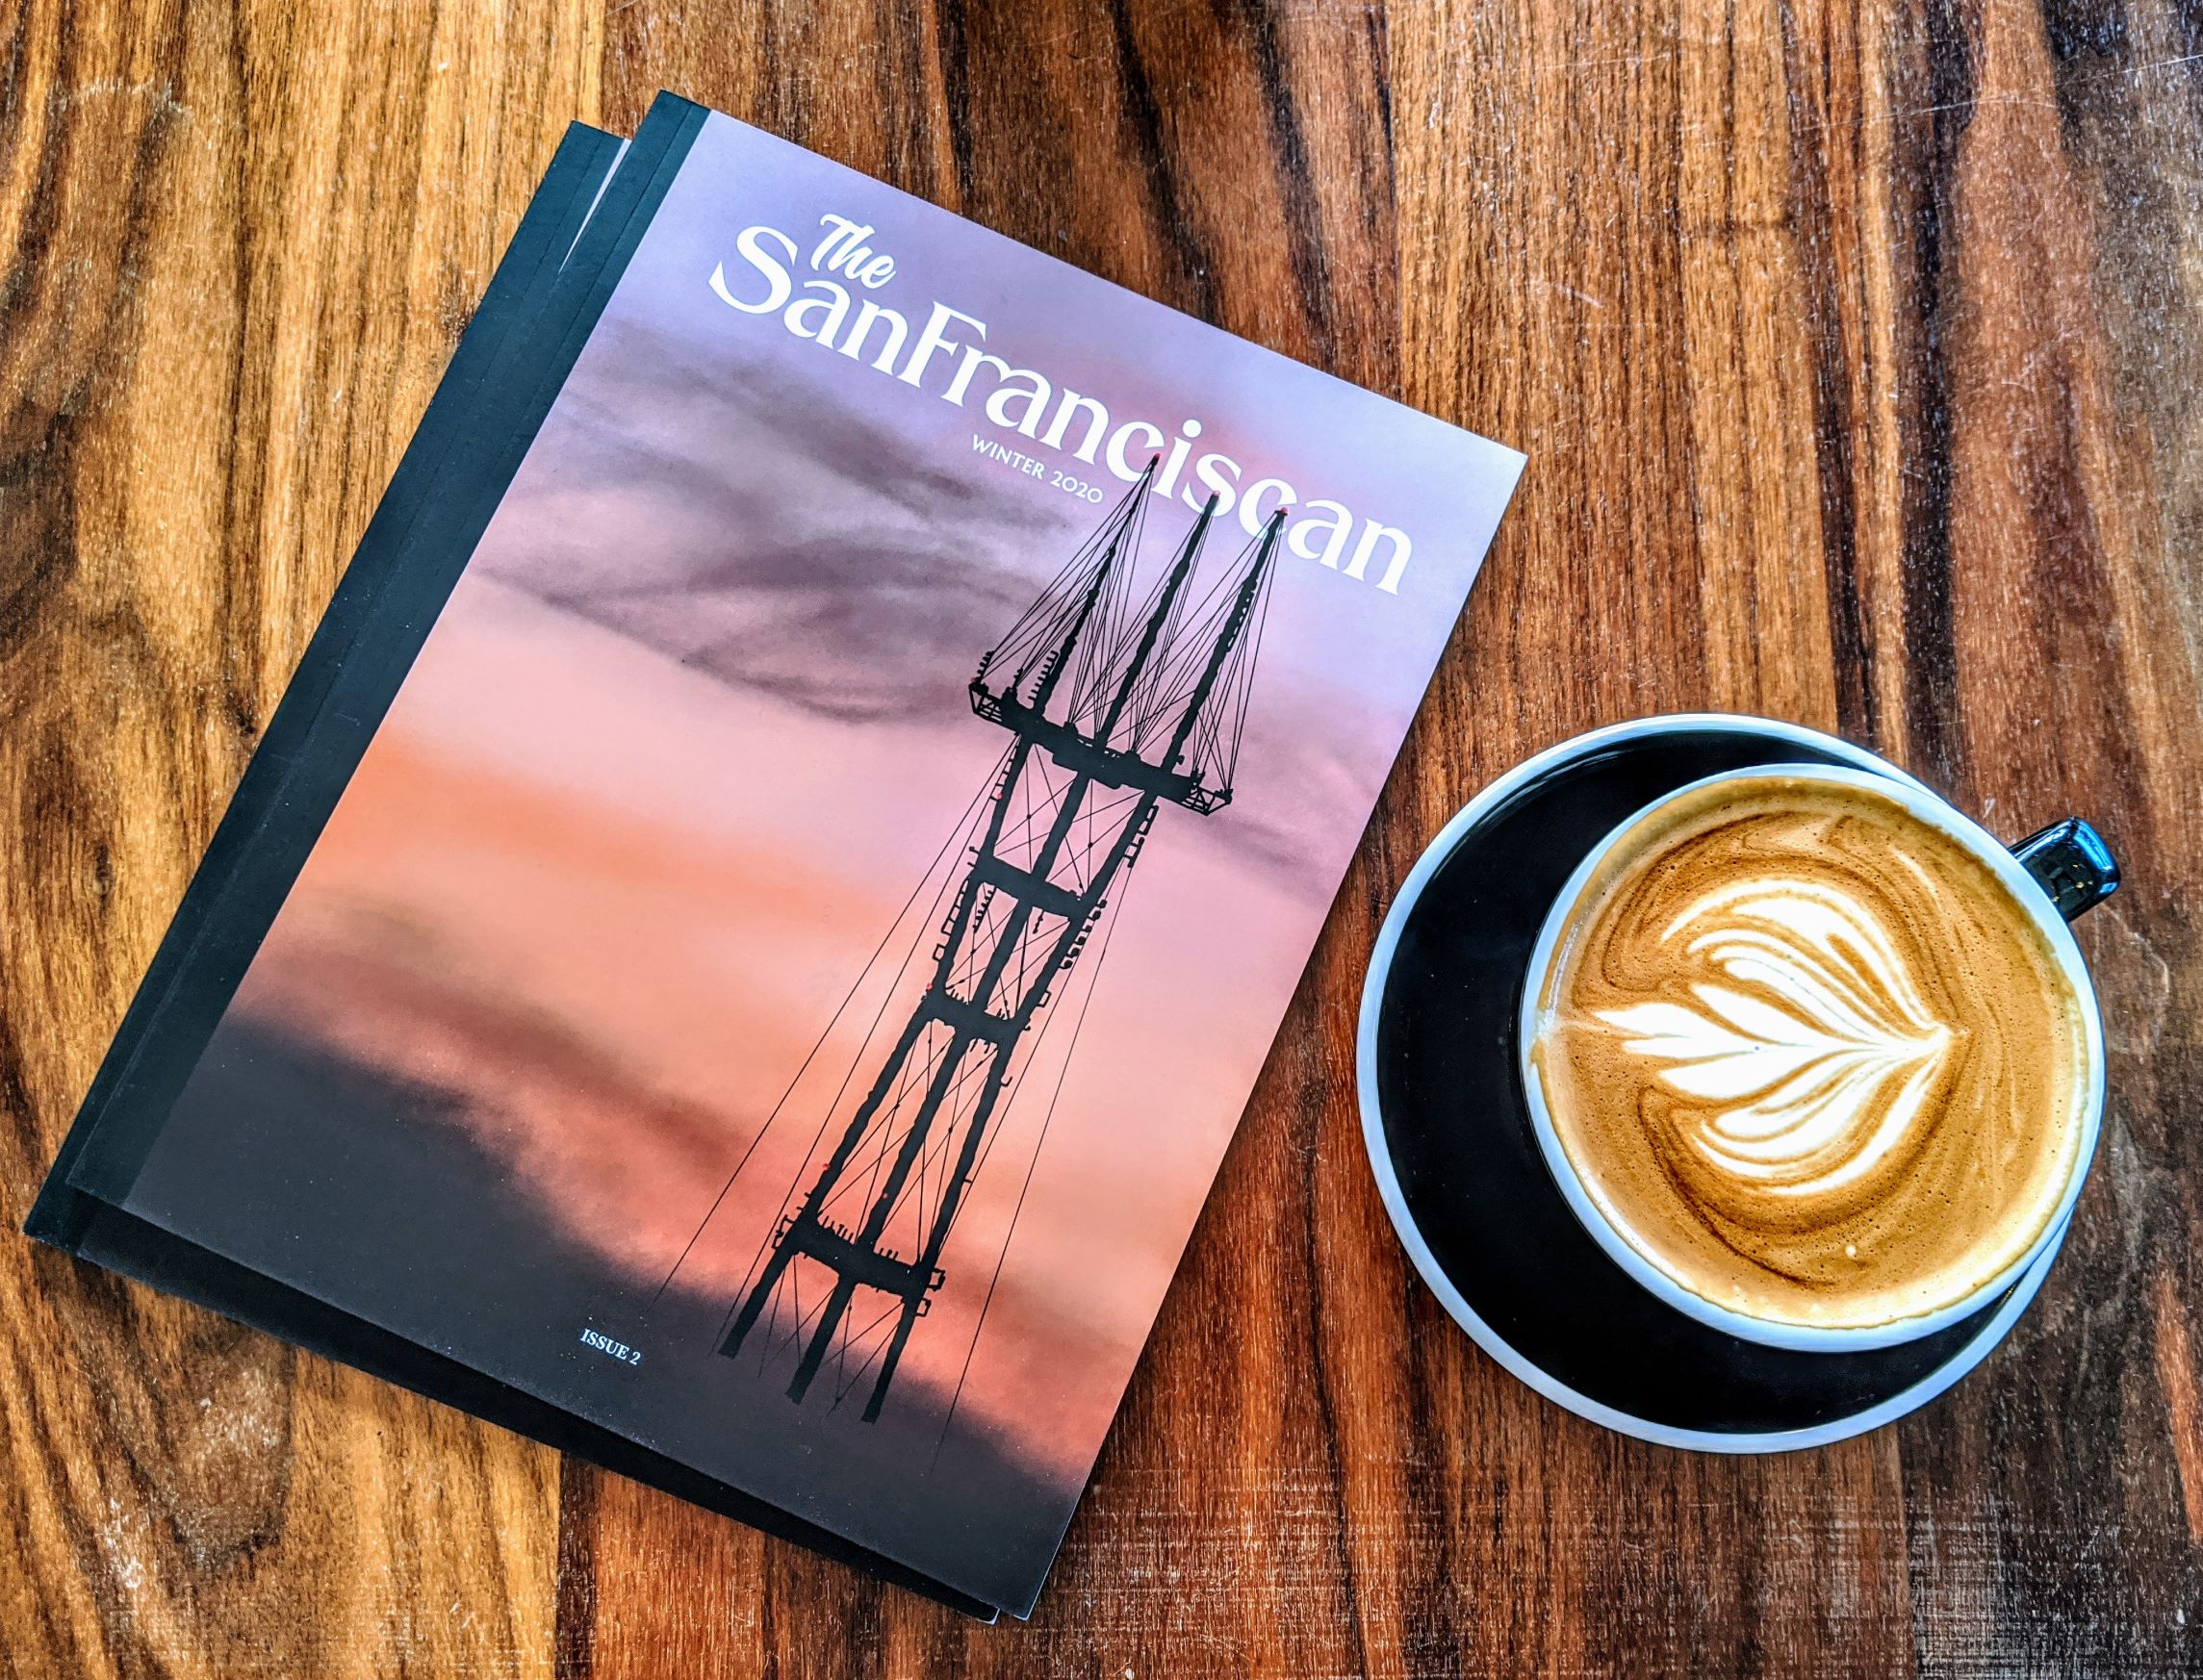 A copy of issue 2 next to some beautiful latte art on a wooden table